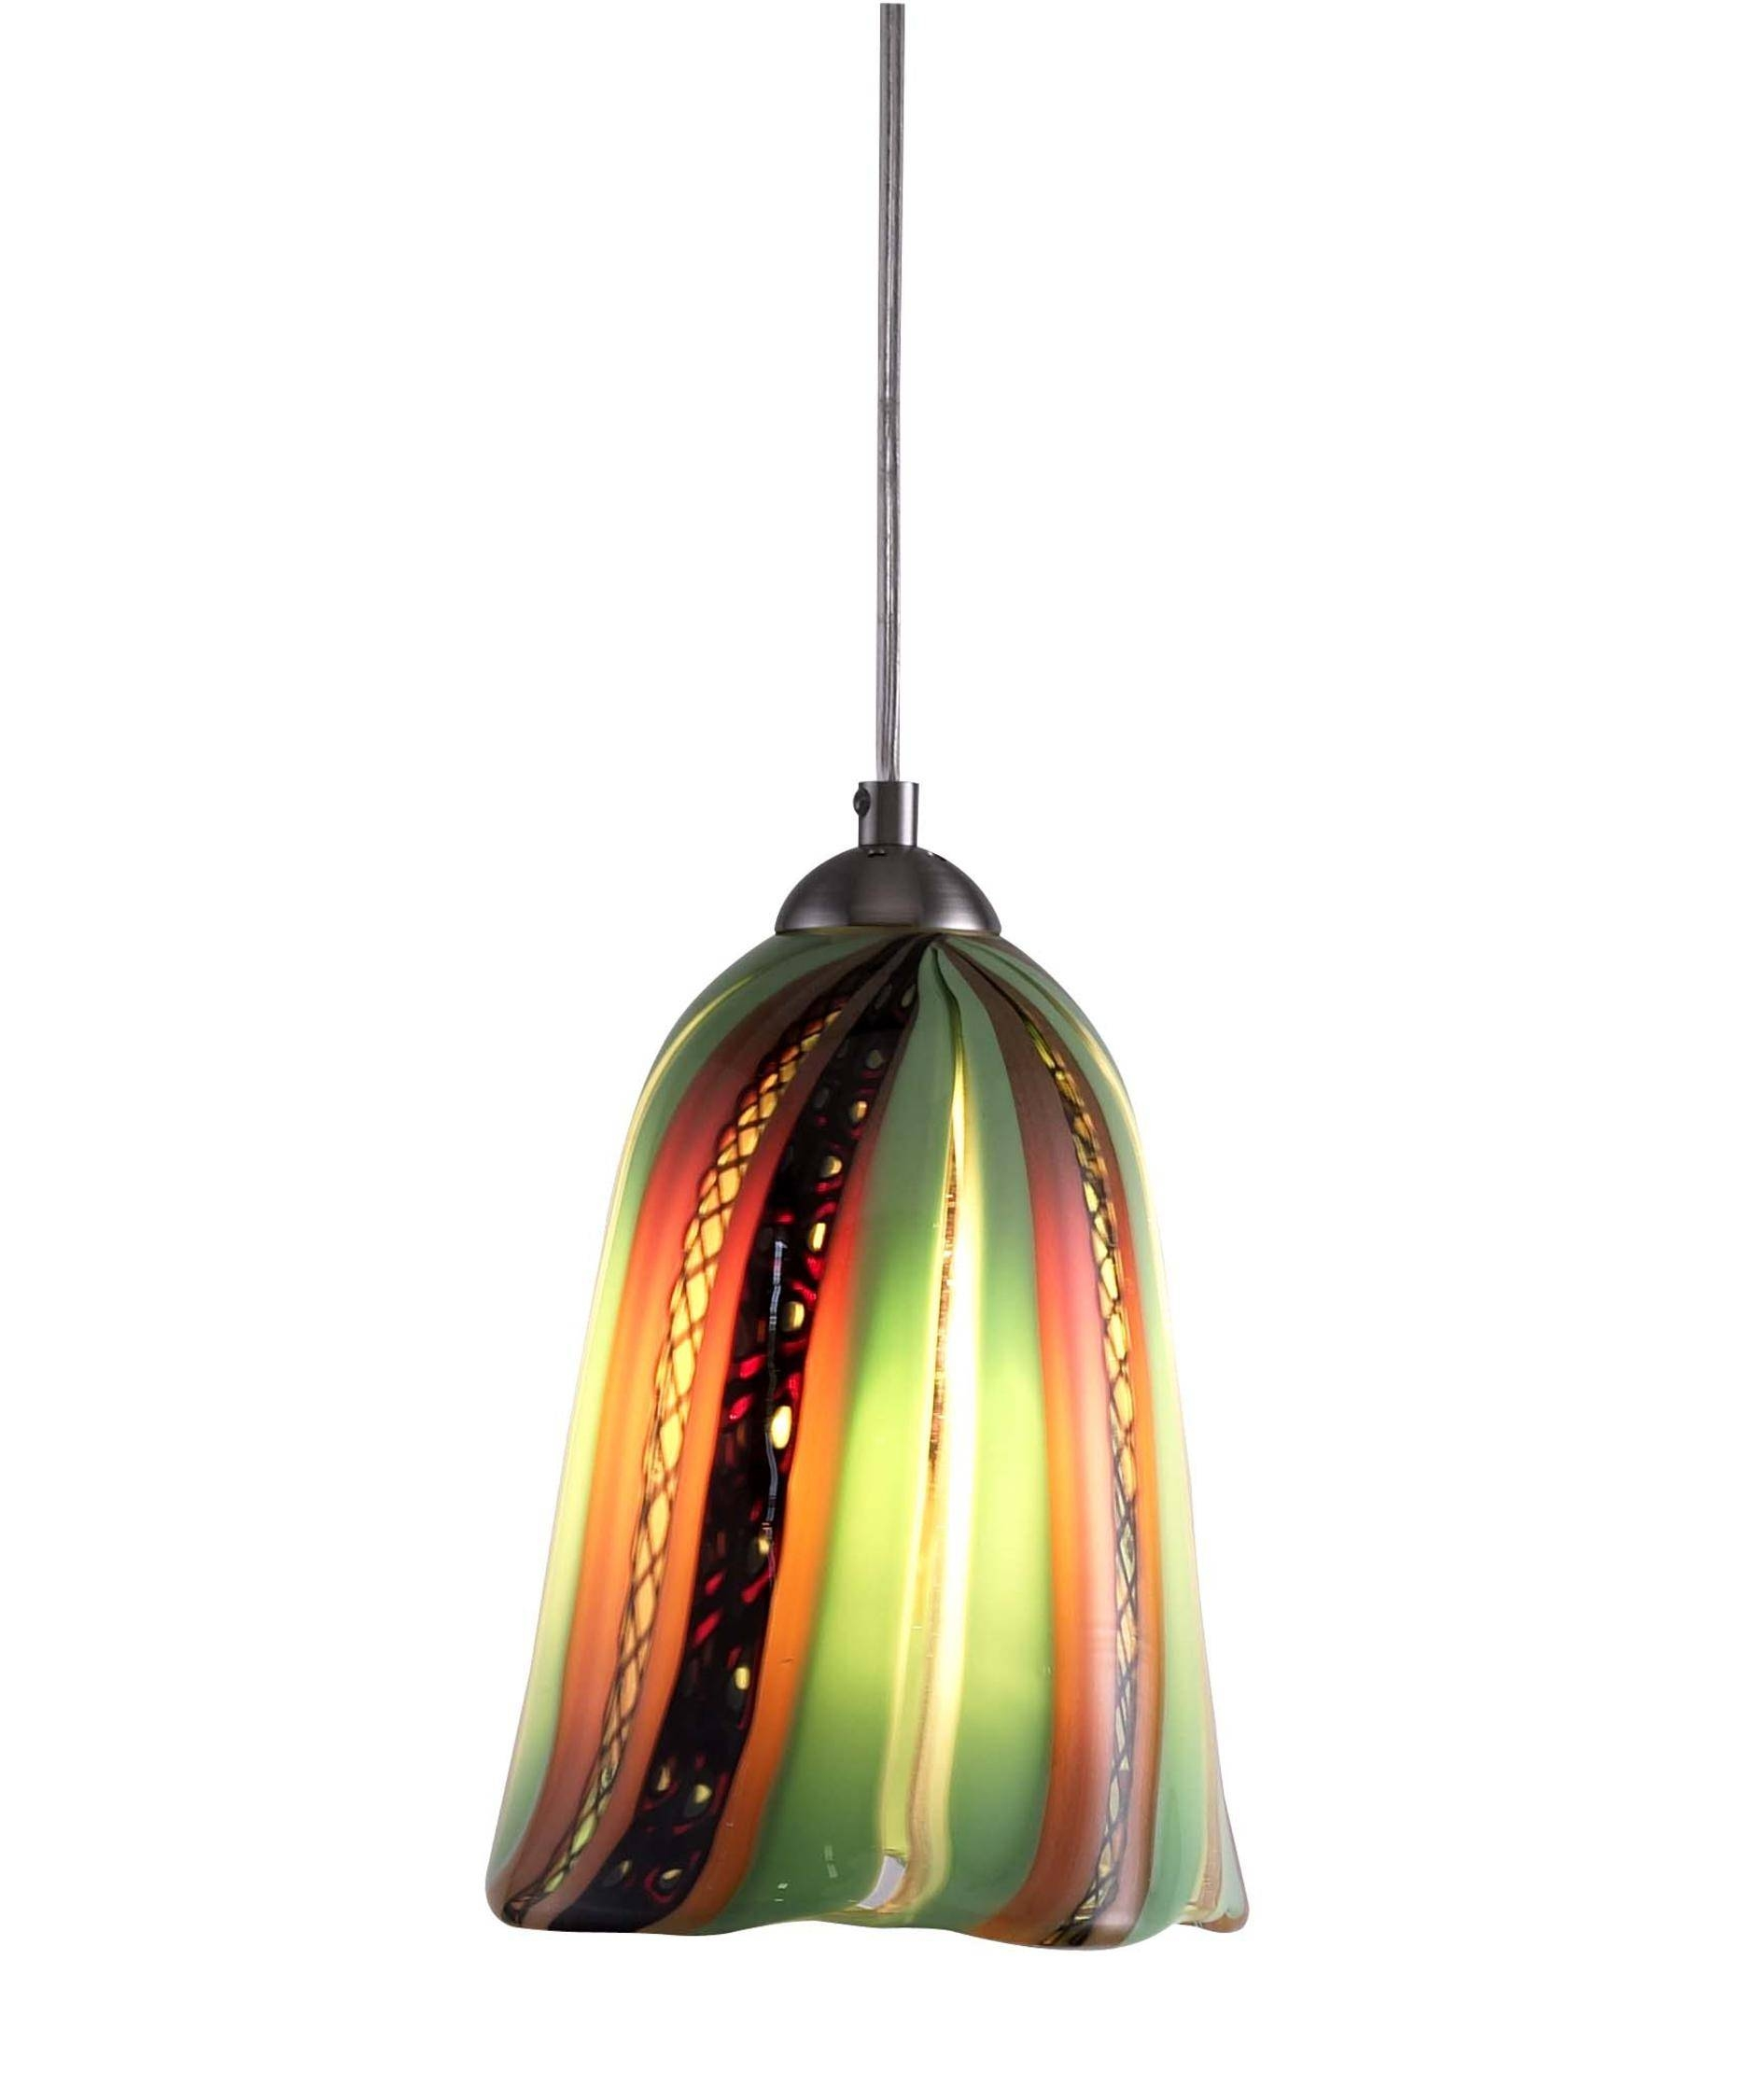 Oggetti Luce Fiorhal Amore Fiore 7 Inch Wide 1 Light Mini Pendant throughout Oggetti Pendant Lights (Image 12 of 15)